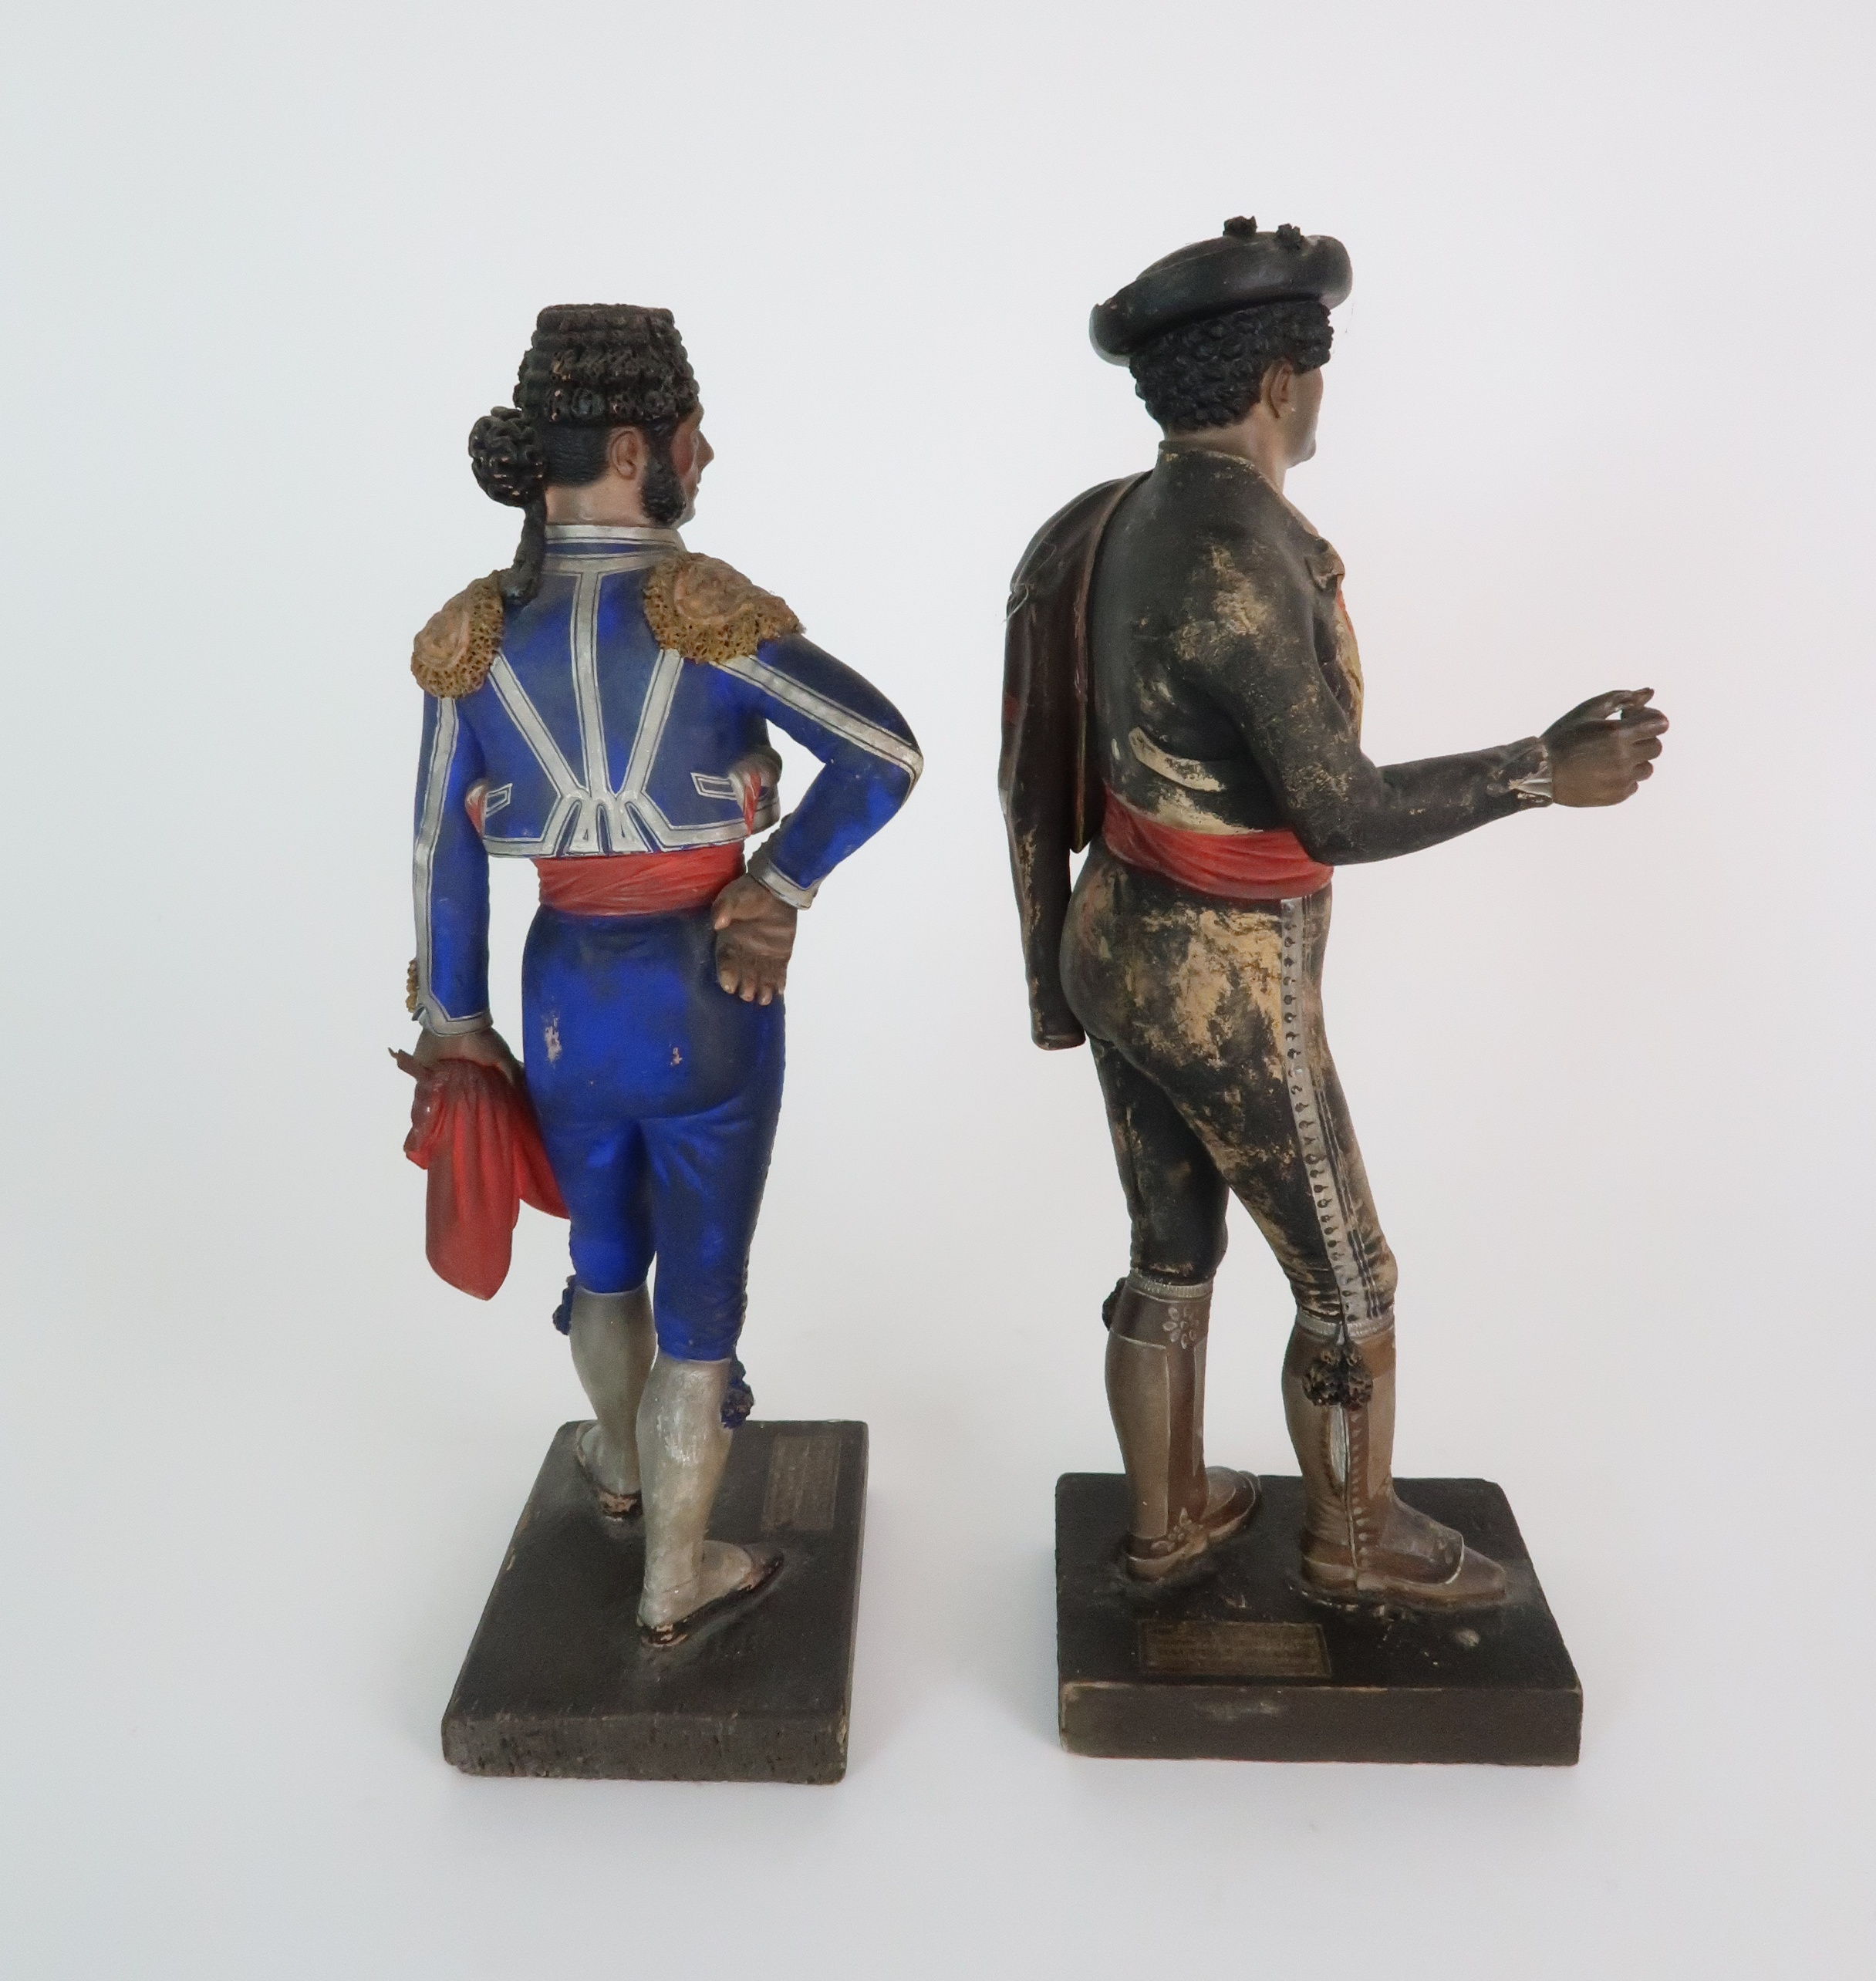 JOSE CUBERO, MALAGA - A PAIR OF MID 19TH CENTURY COLD PAINTED TERRACOTTA FIGURES one a matador, - Image 4 of 8